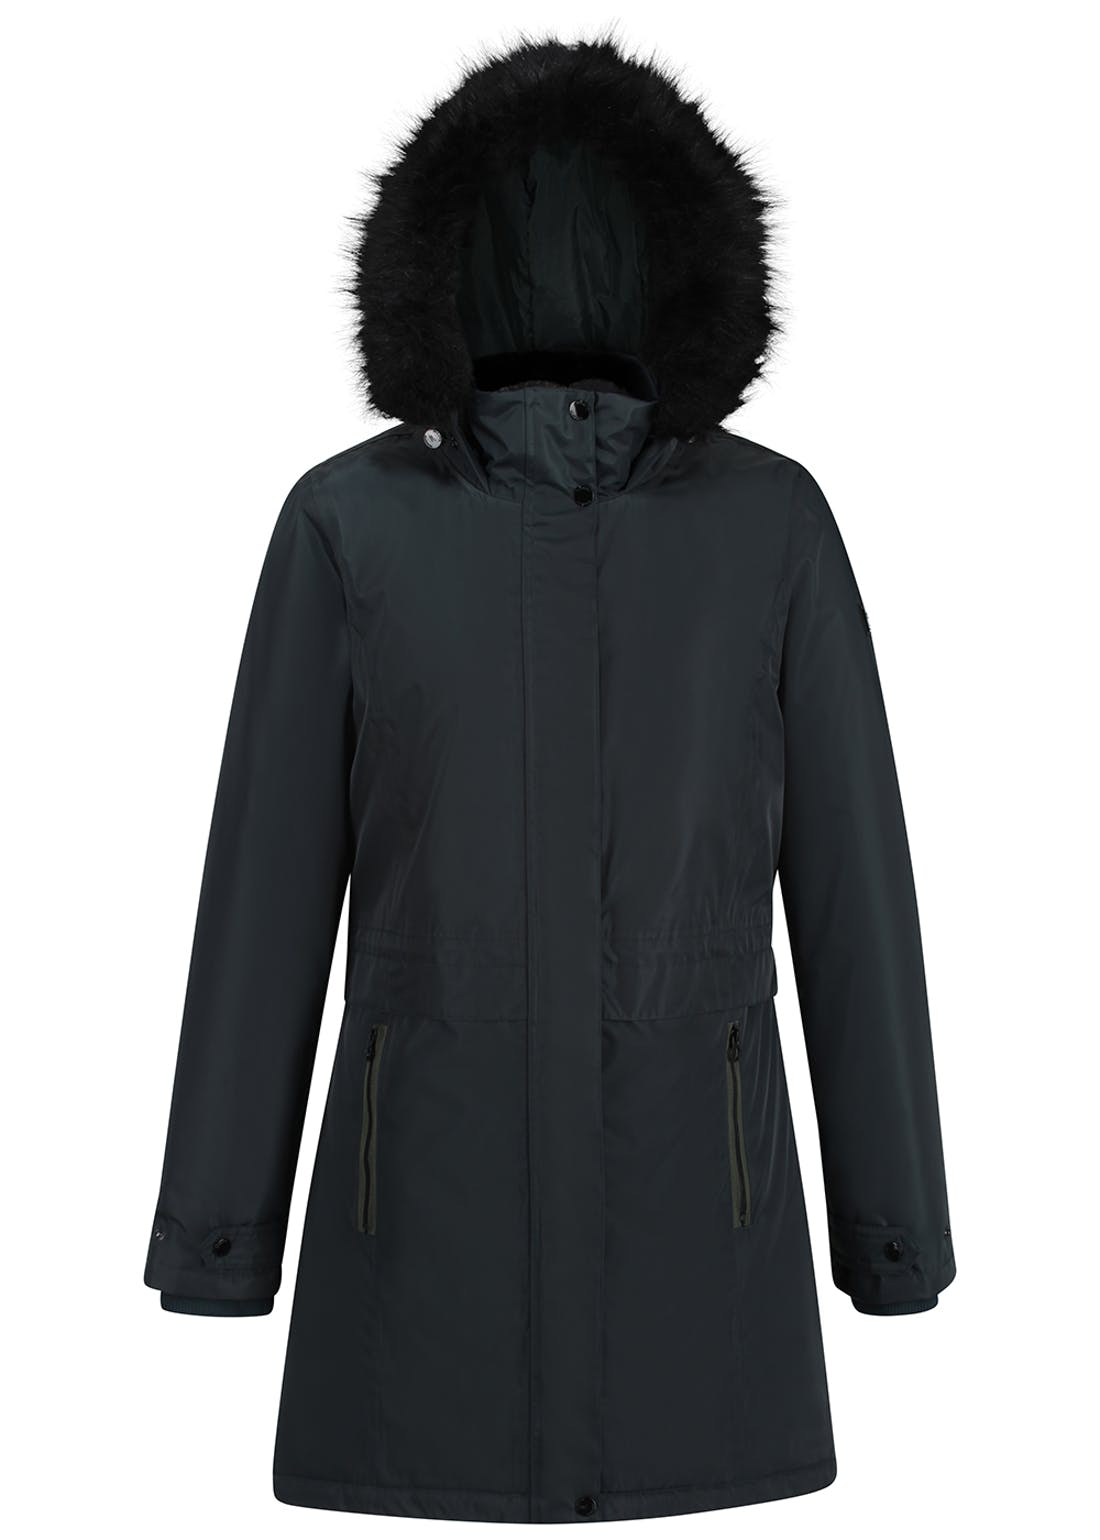 Regatta Kimberley Walsh Collection Lexis Waterproof Parka